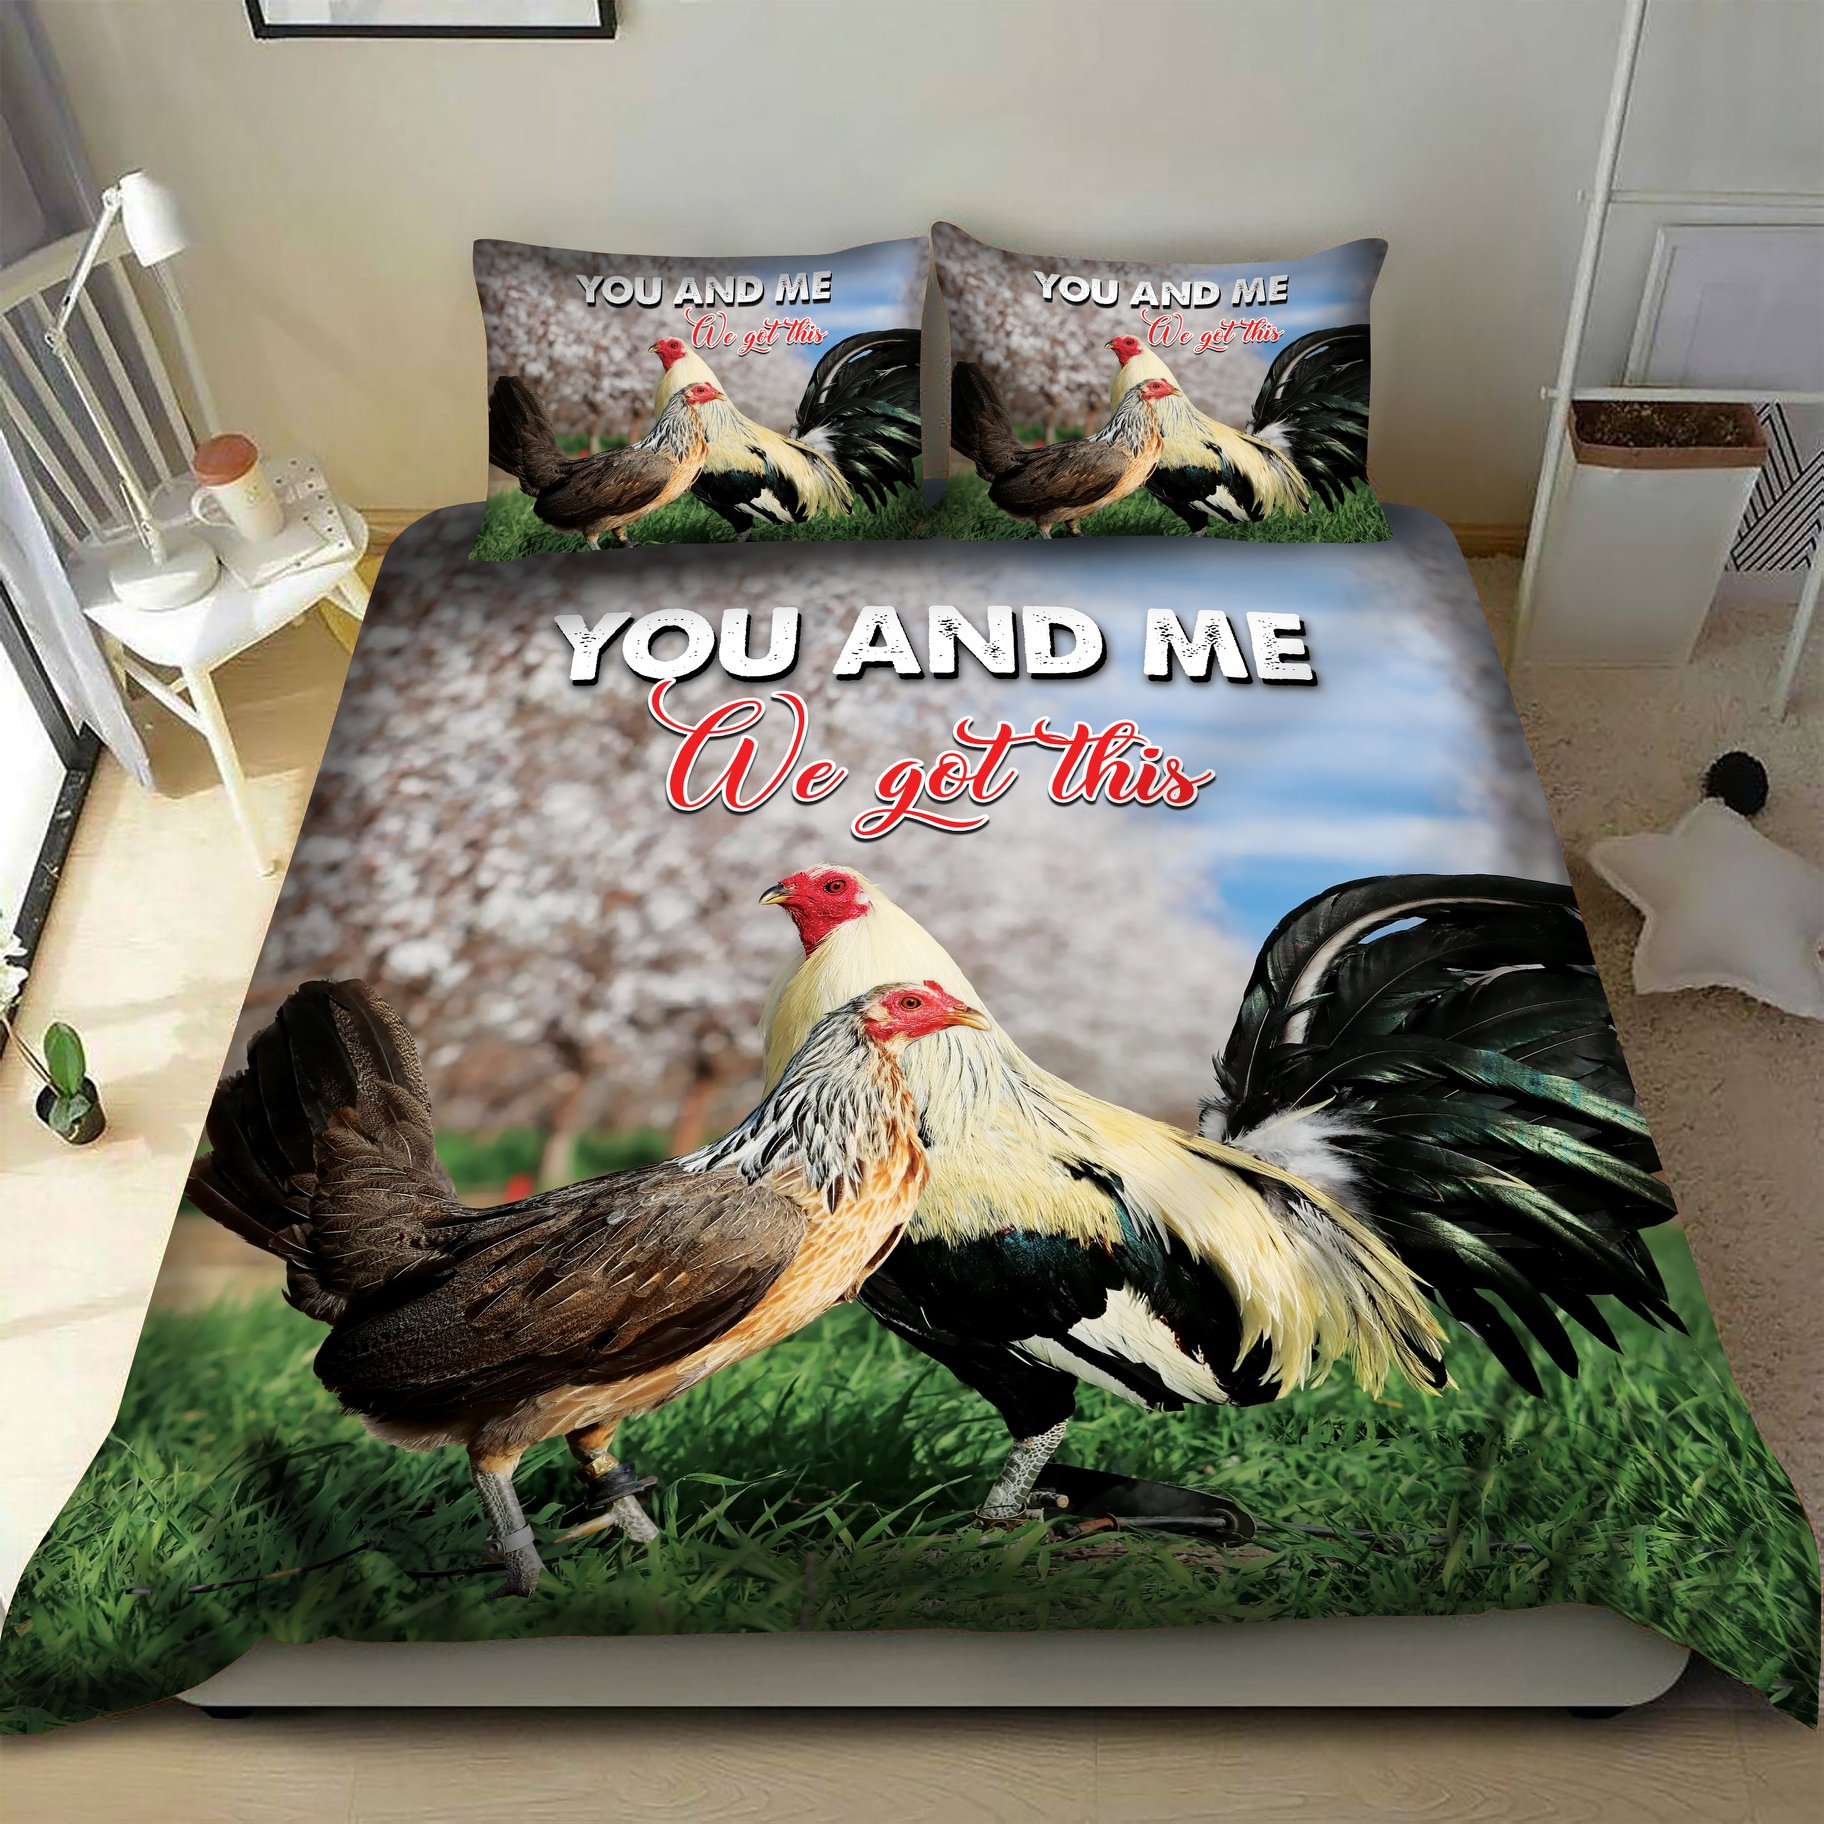 Rooster you and me we got this bedding set 1